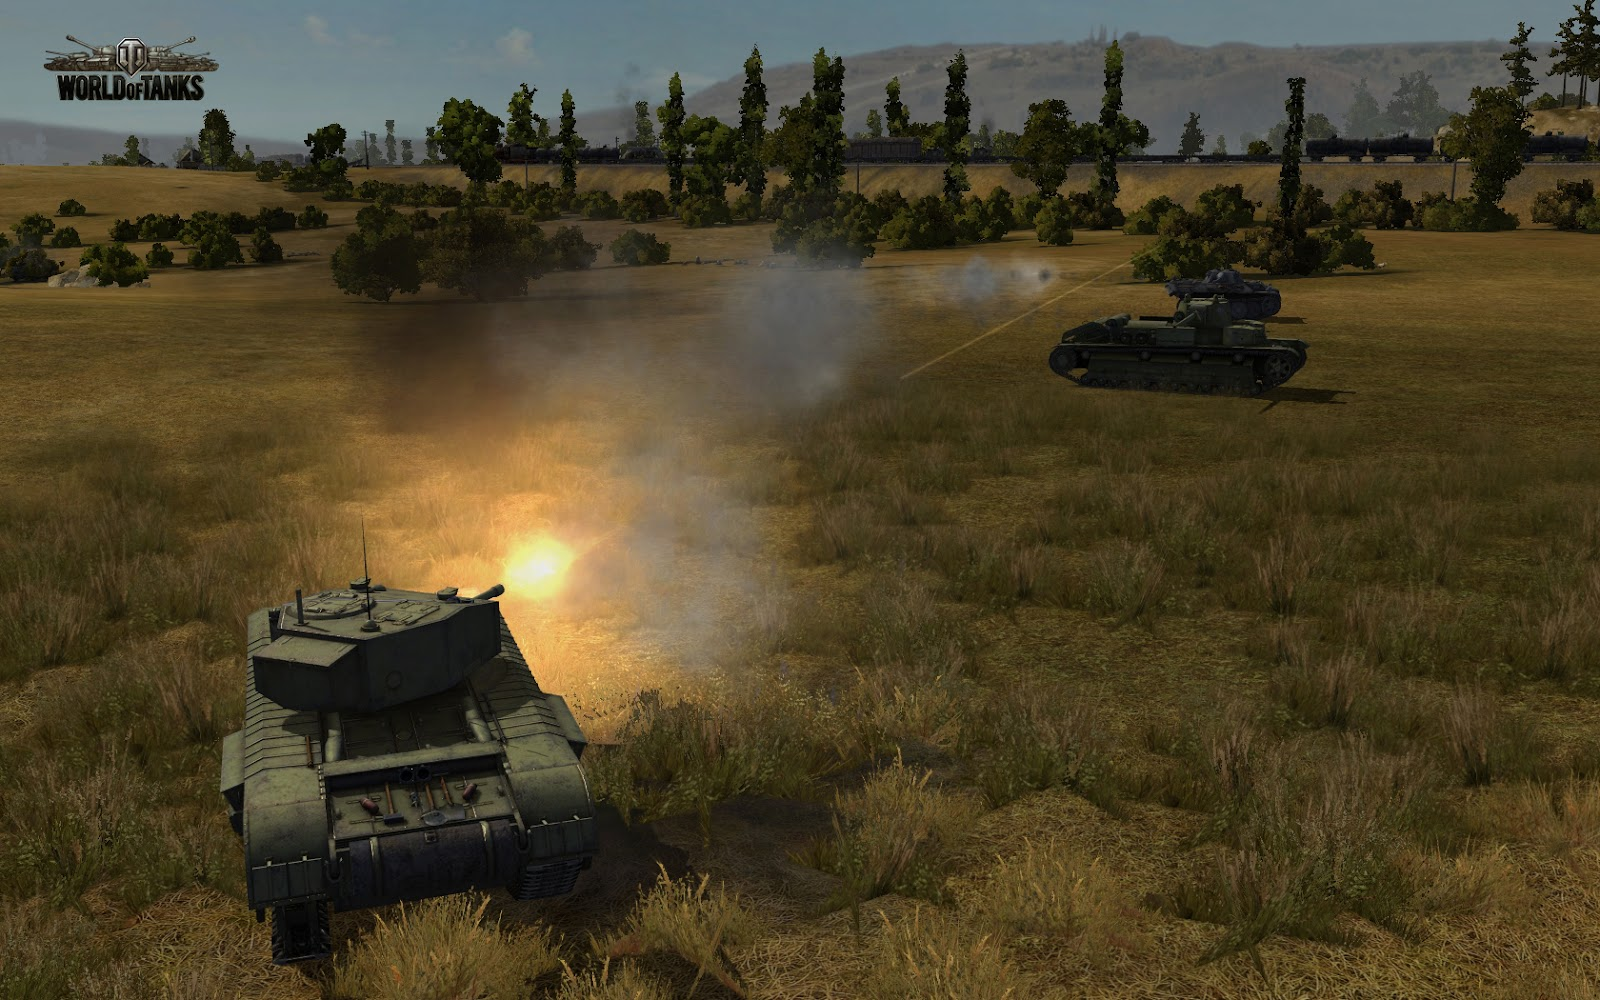 http://3.bp.blogspot.com/-0v4zEd7chpE/T64bVavo3XI/AAAAAAAAAMc/BRgEdTdxnA4/s1600/wallpaper-world-of-tanks-mmo.jpg